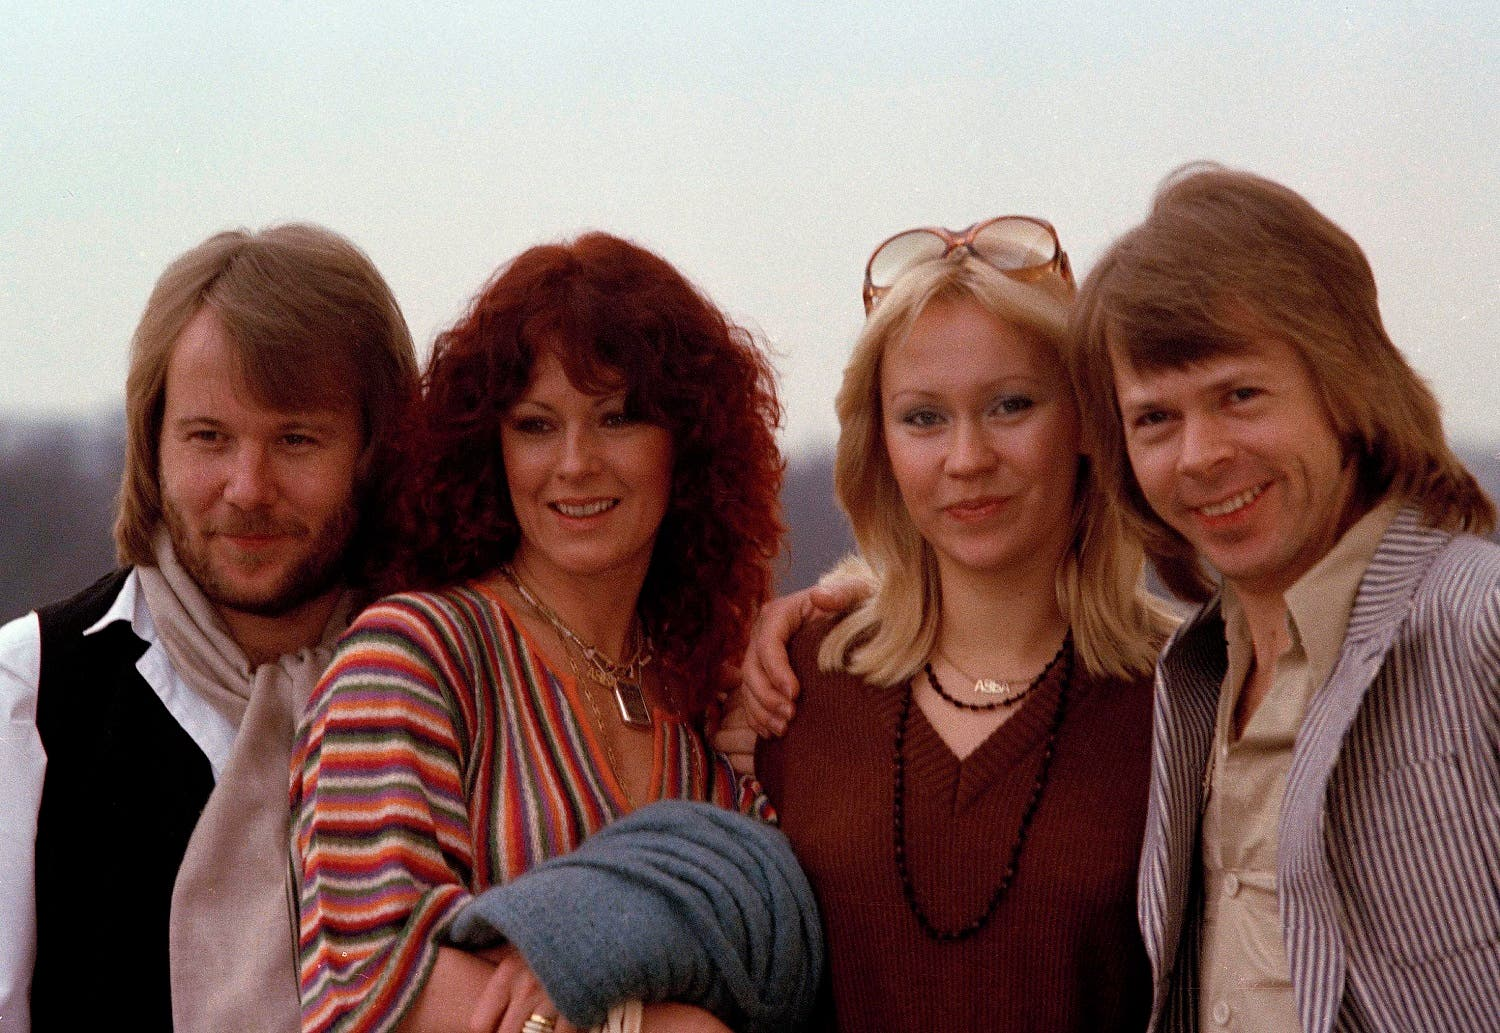 """The Swedish pop group pose together in London, where they will be attending the premiere of their first movie """"ABBA - The Movie,"""" Feb. 16, 1978. (AP)"""